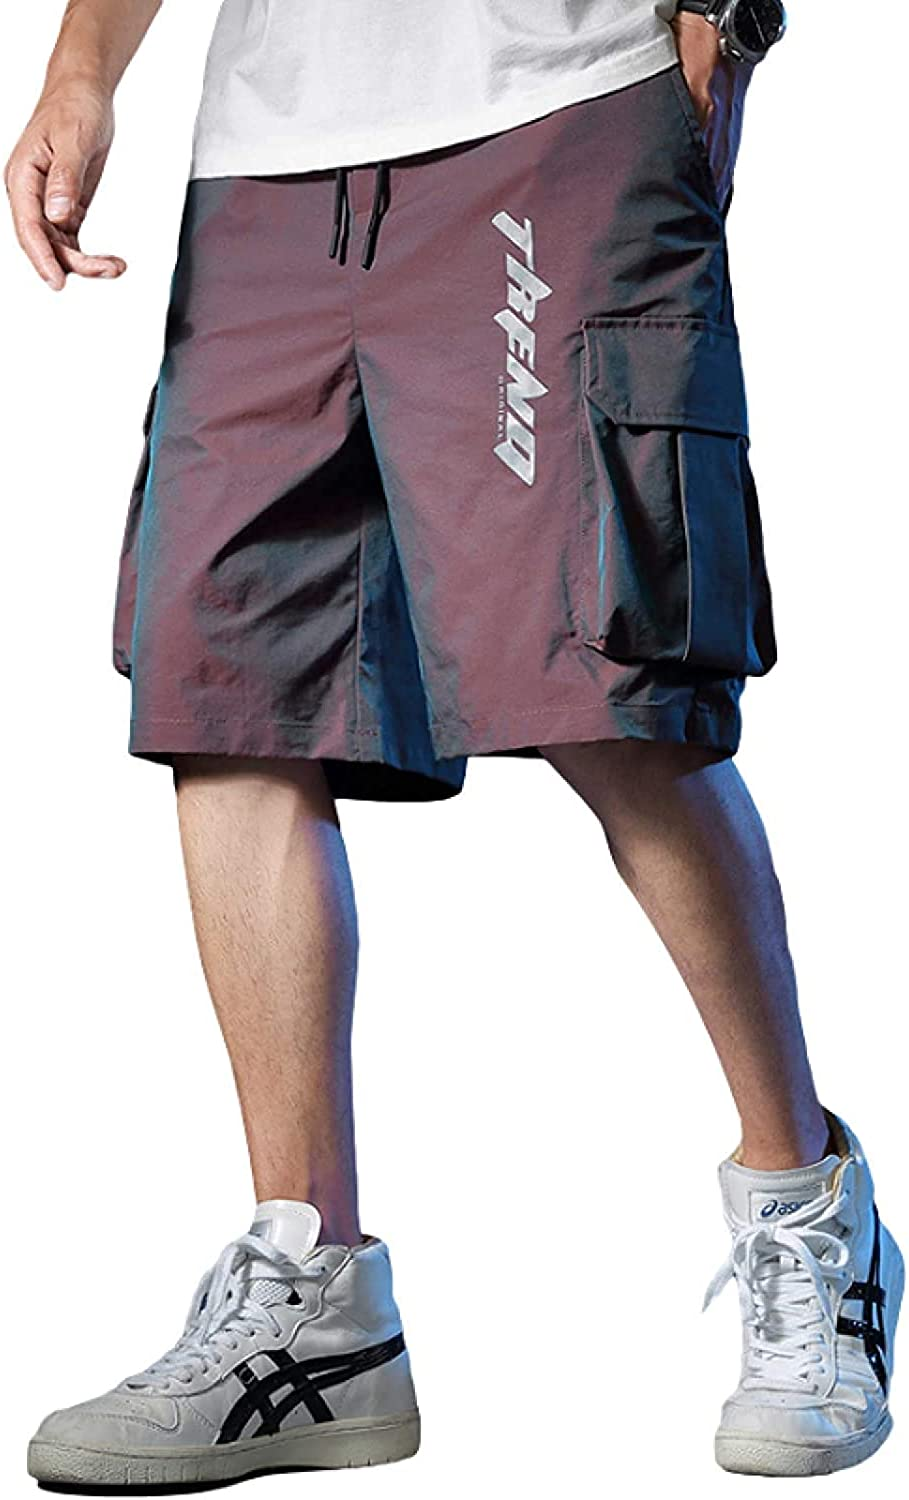 Men's Relaxed Reflective Cargo Shorts Fashion Trend Streetwear Stitching